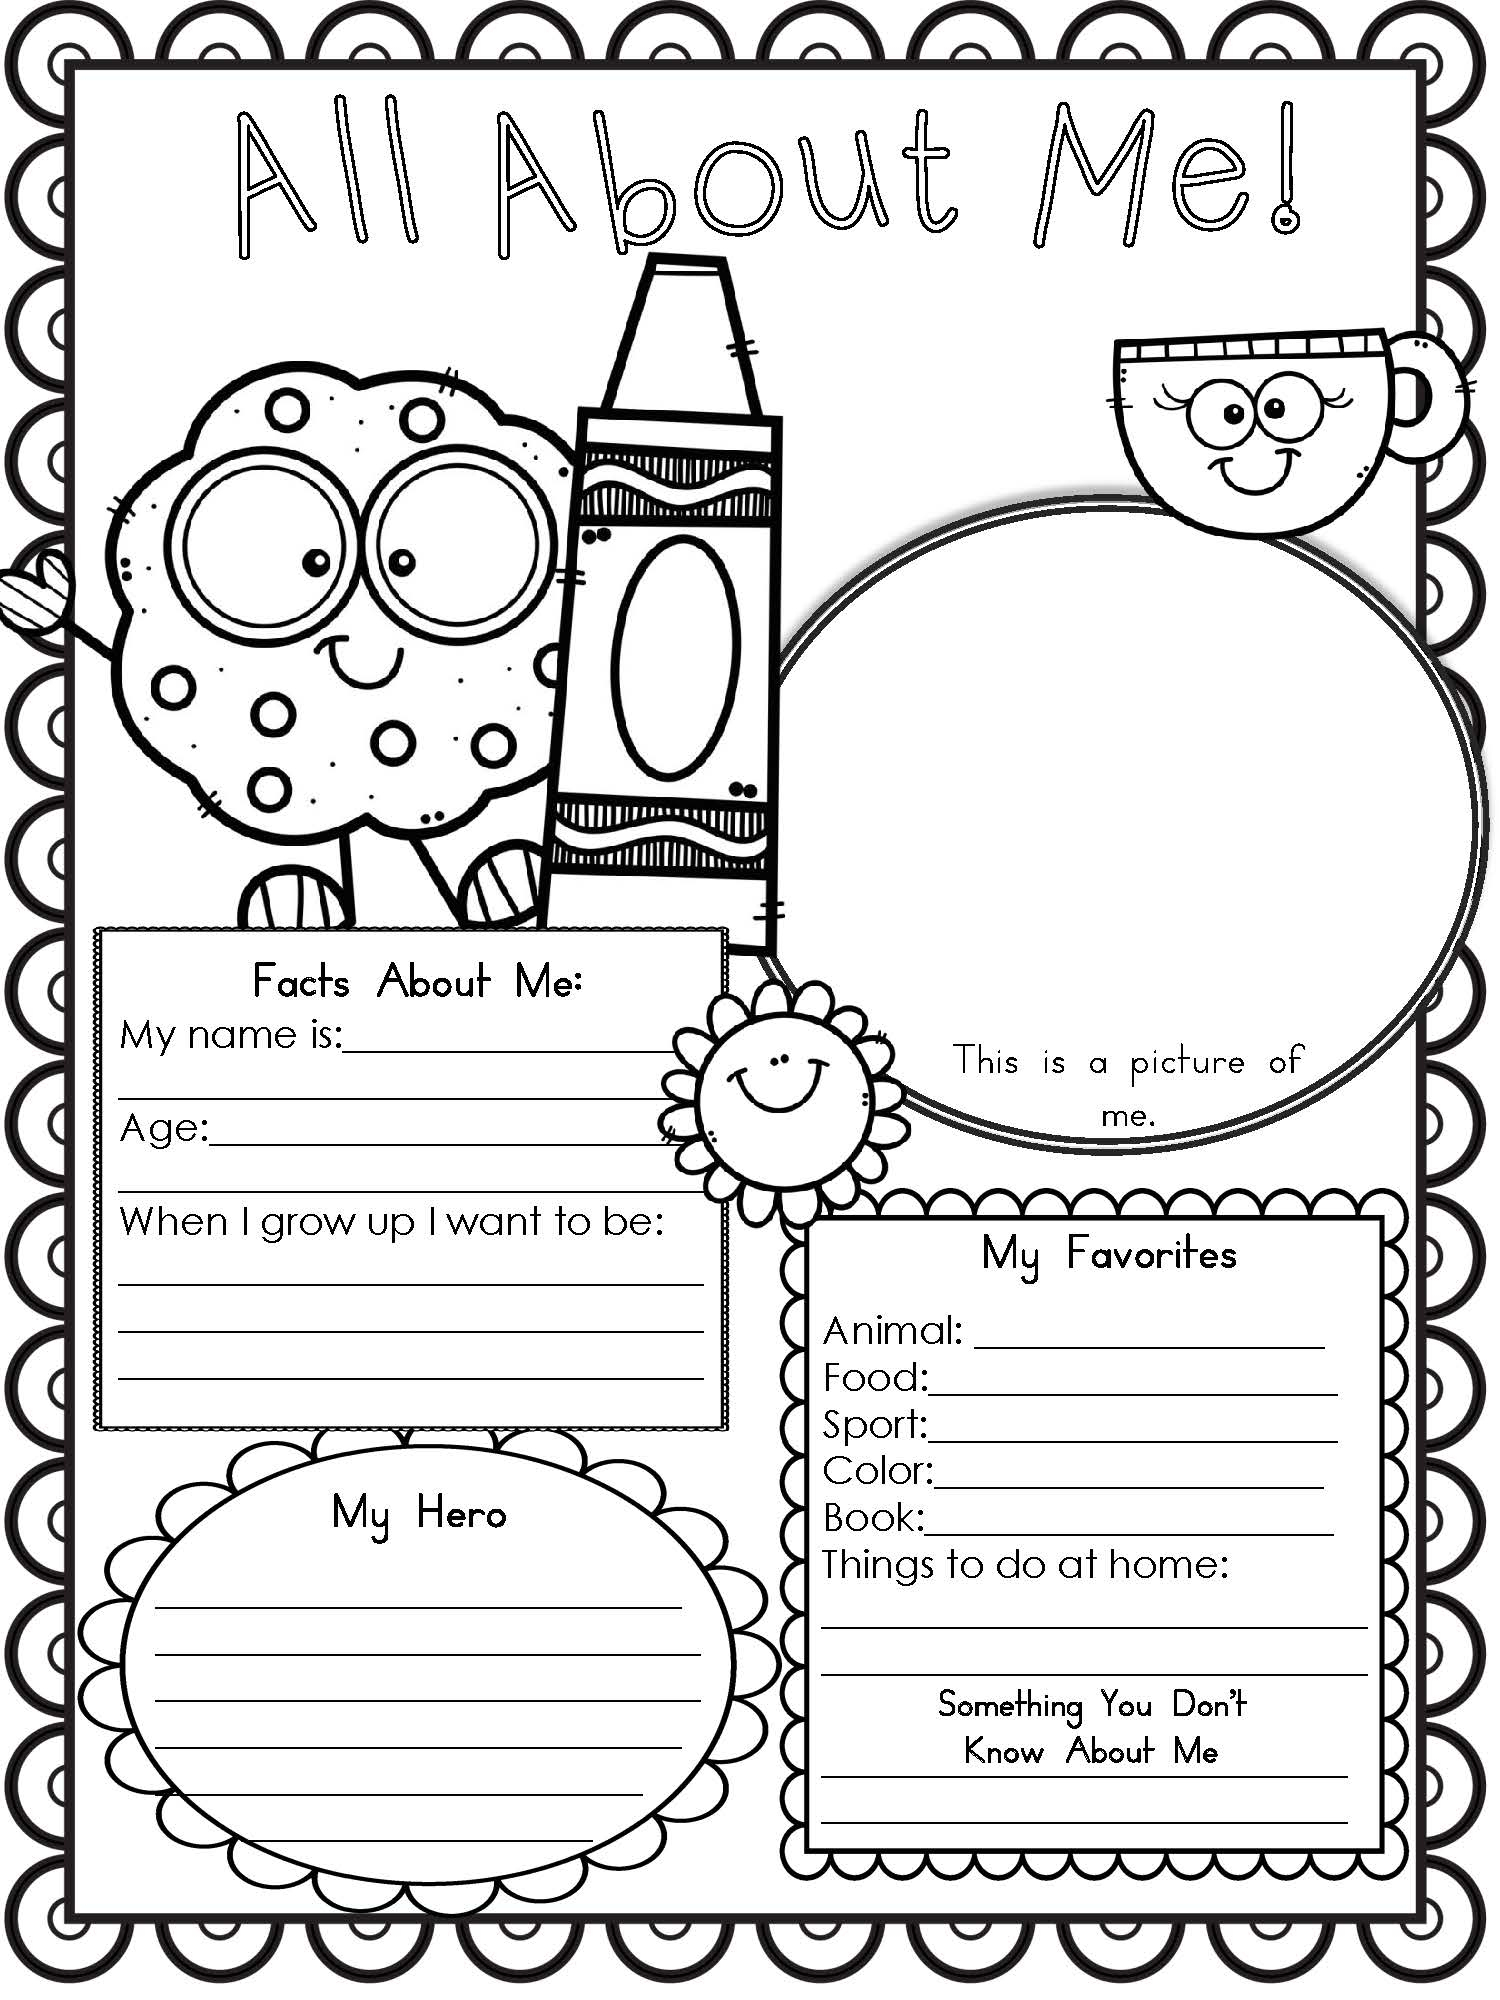 Preschool & Kindergarten Archives - Modern Homeschool Family | All About Me Worksheet Preschool Printable